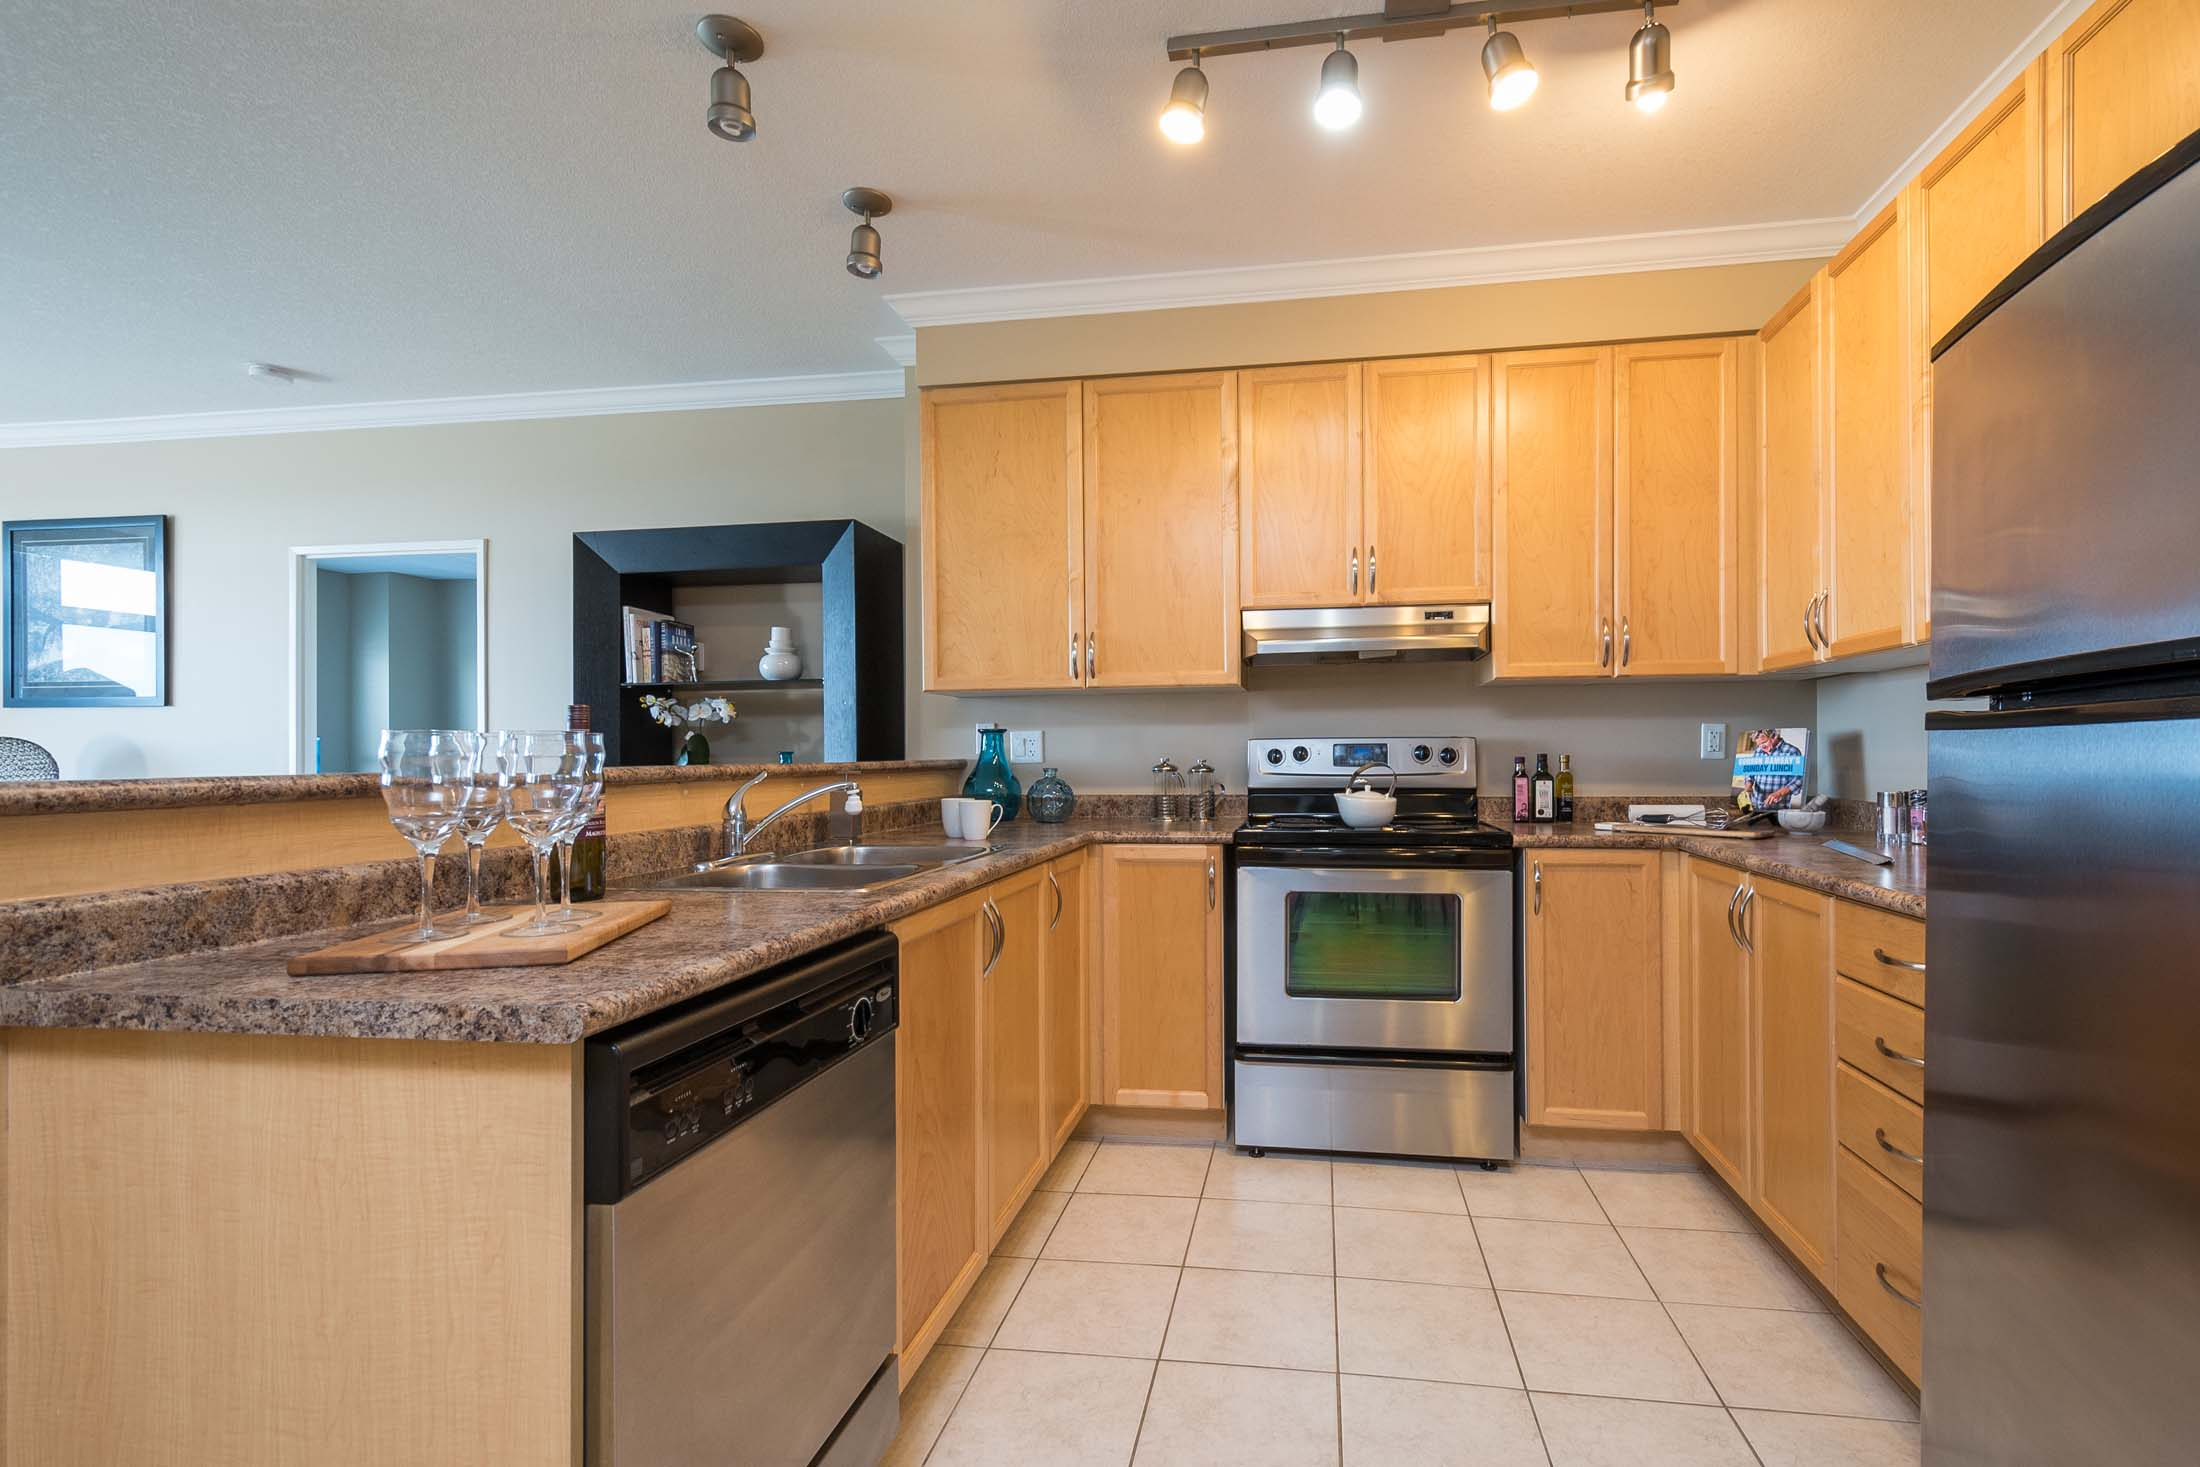 Granite Countertops London Ontario Luxury One And Two Bedroom For Rent London The Harriston